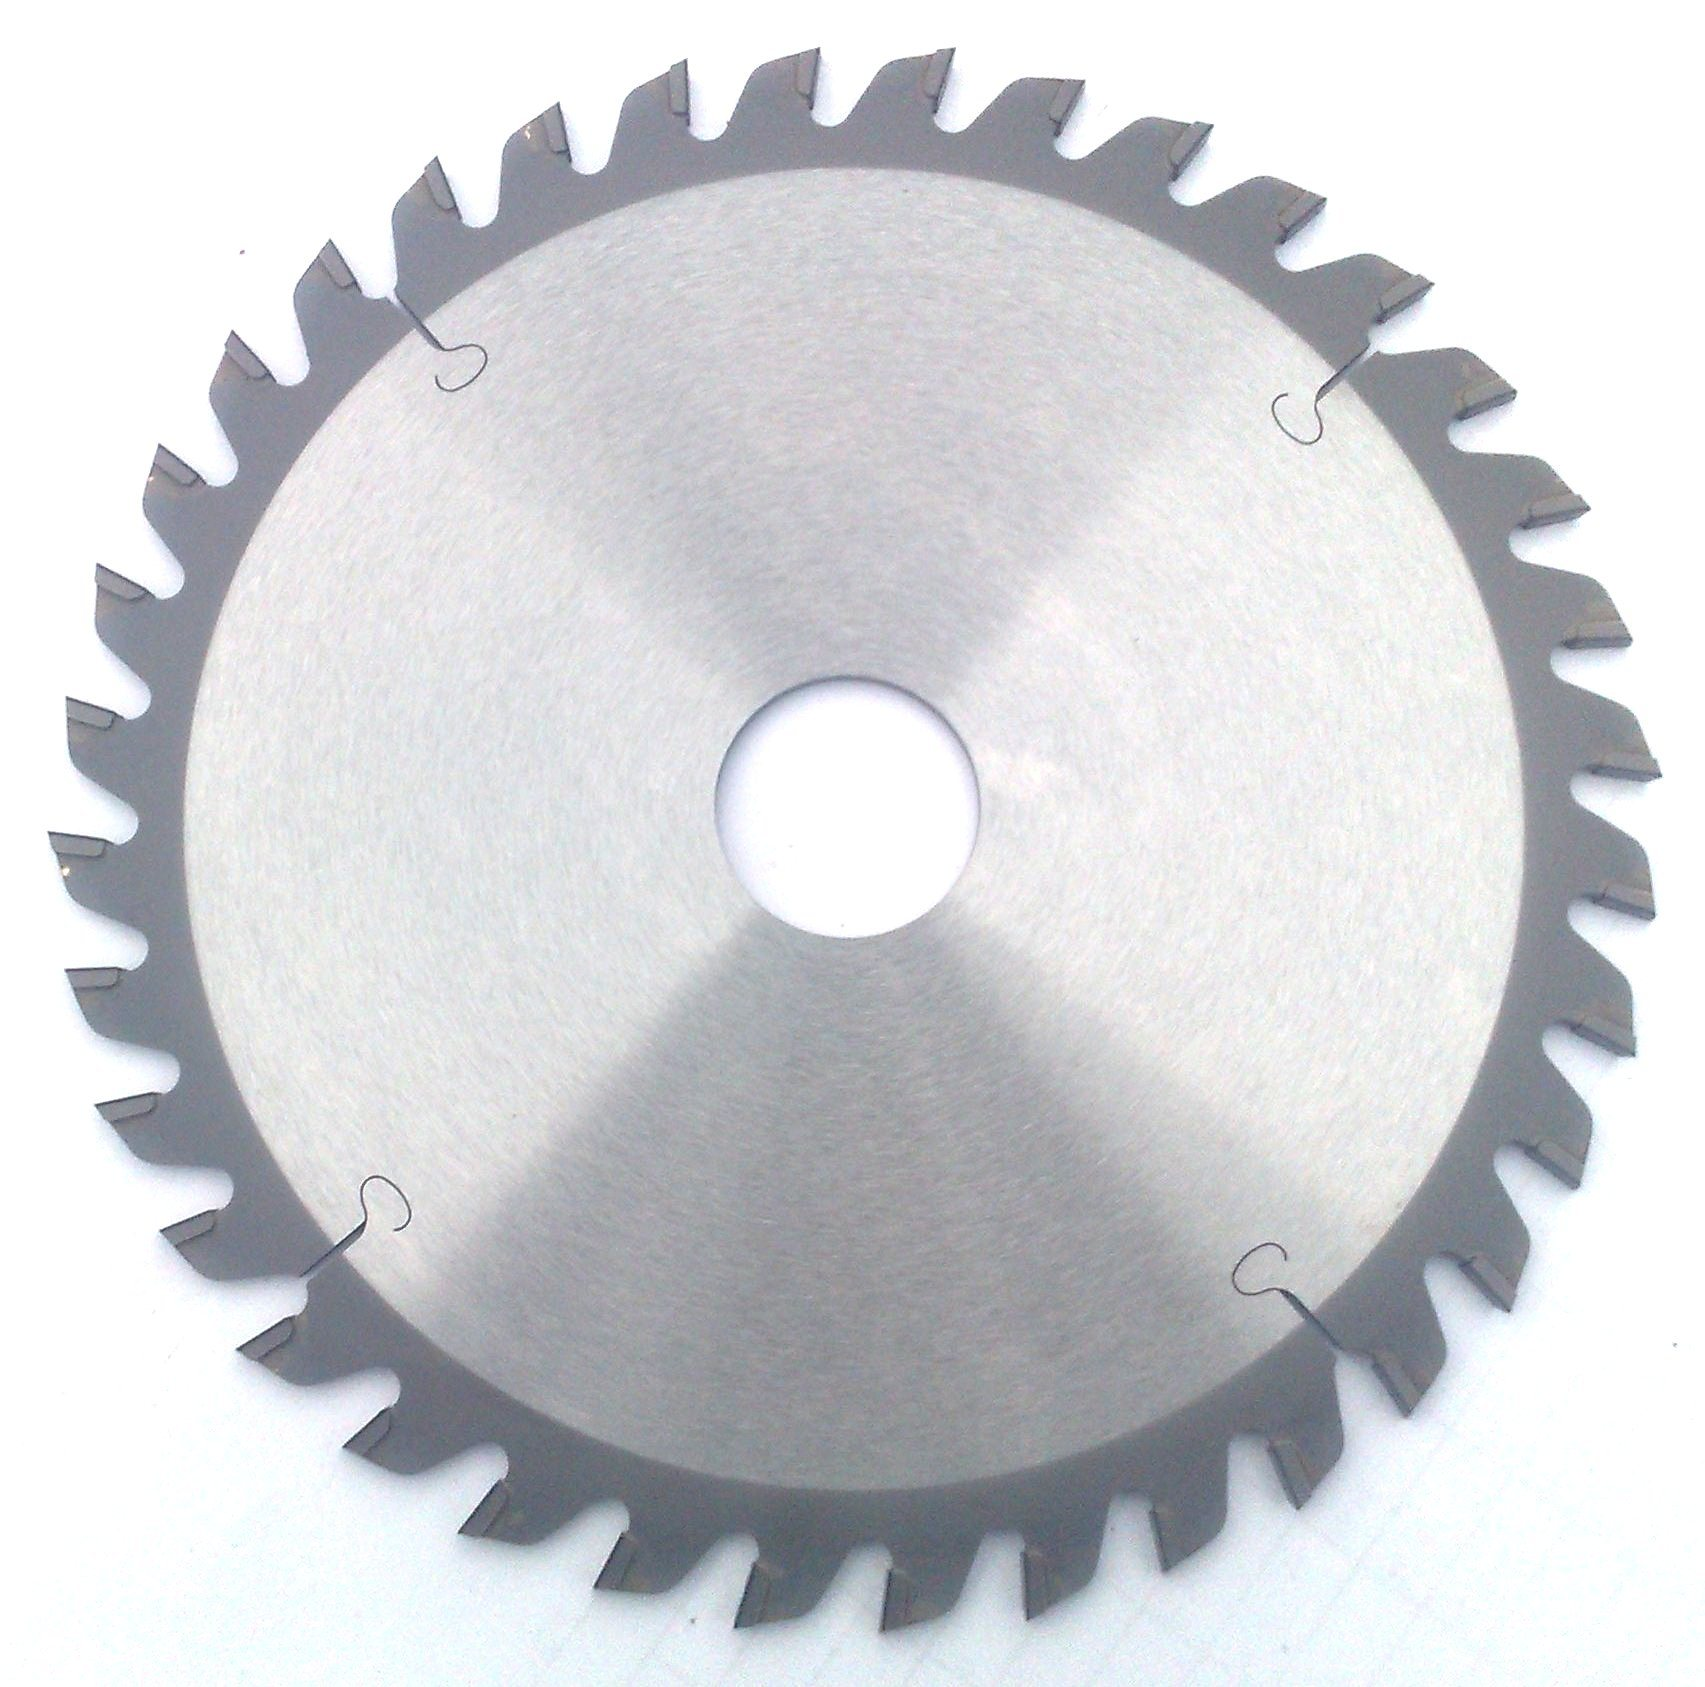 China PCD Circular Saw Blade for Aluminum - China Pcd Saw ...